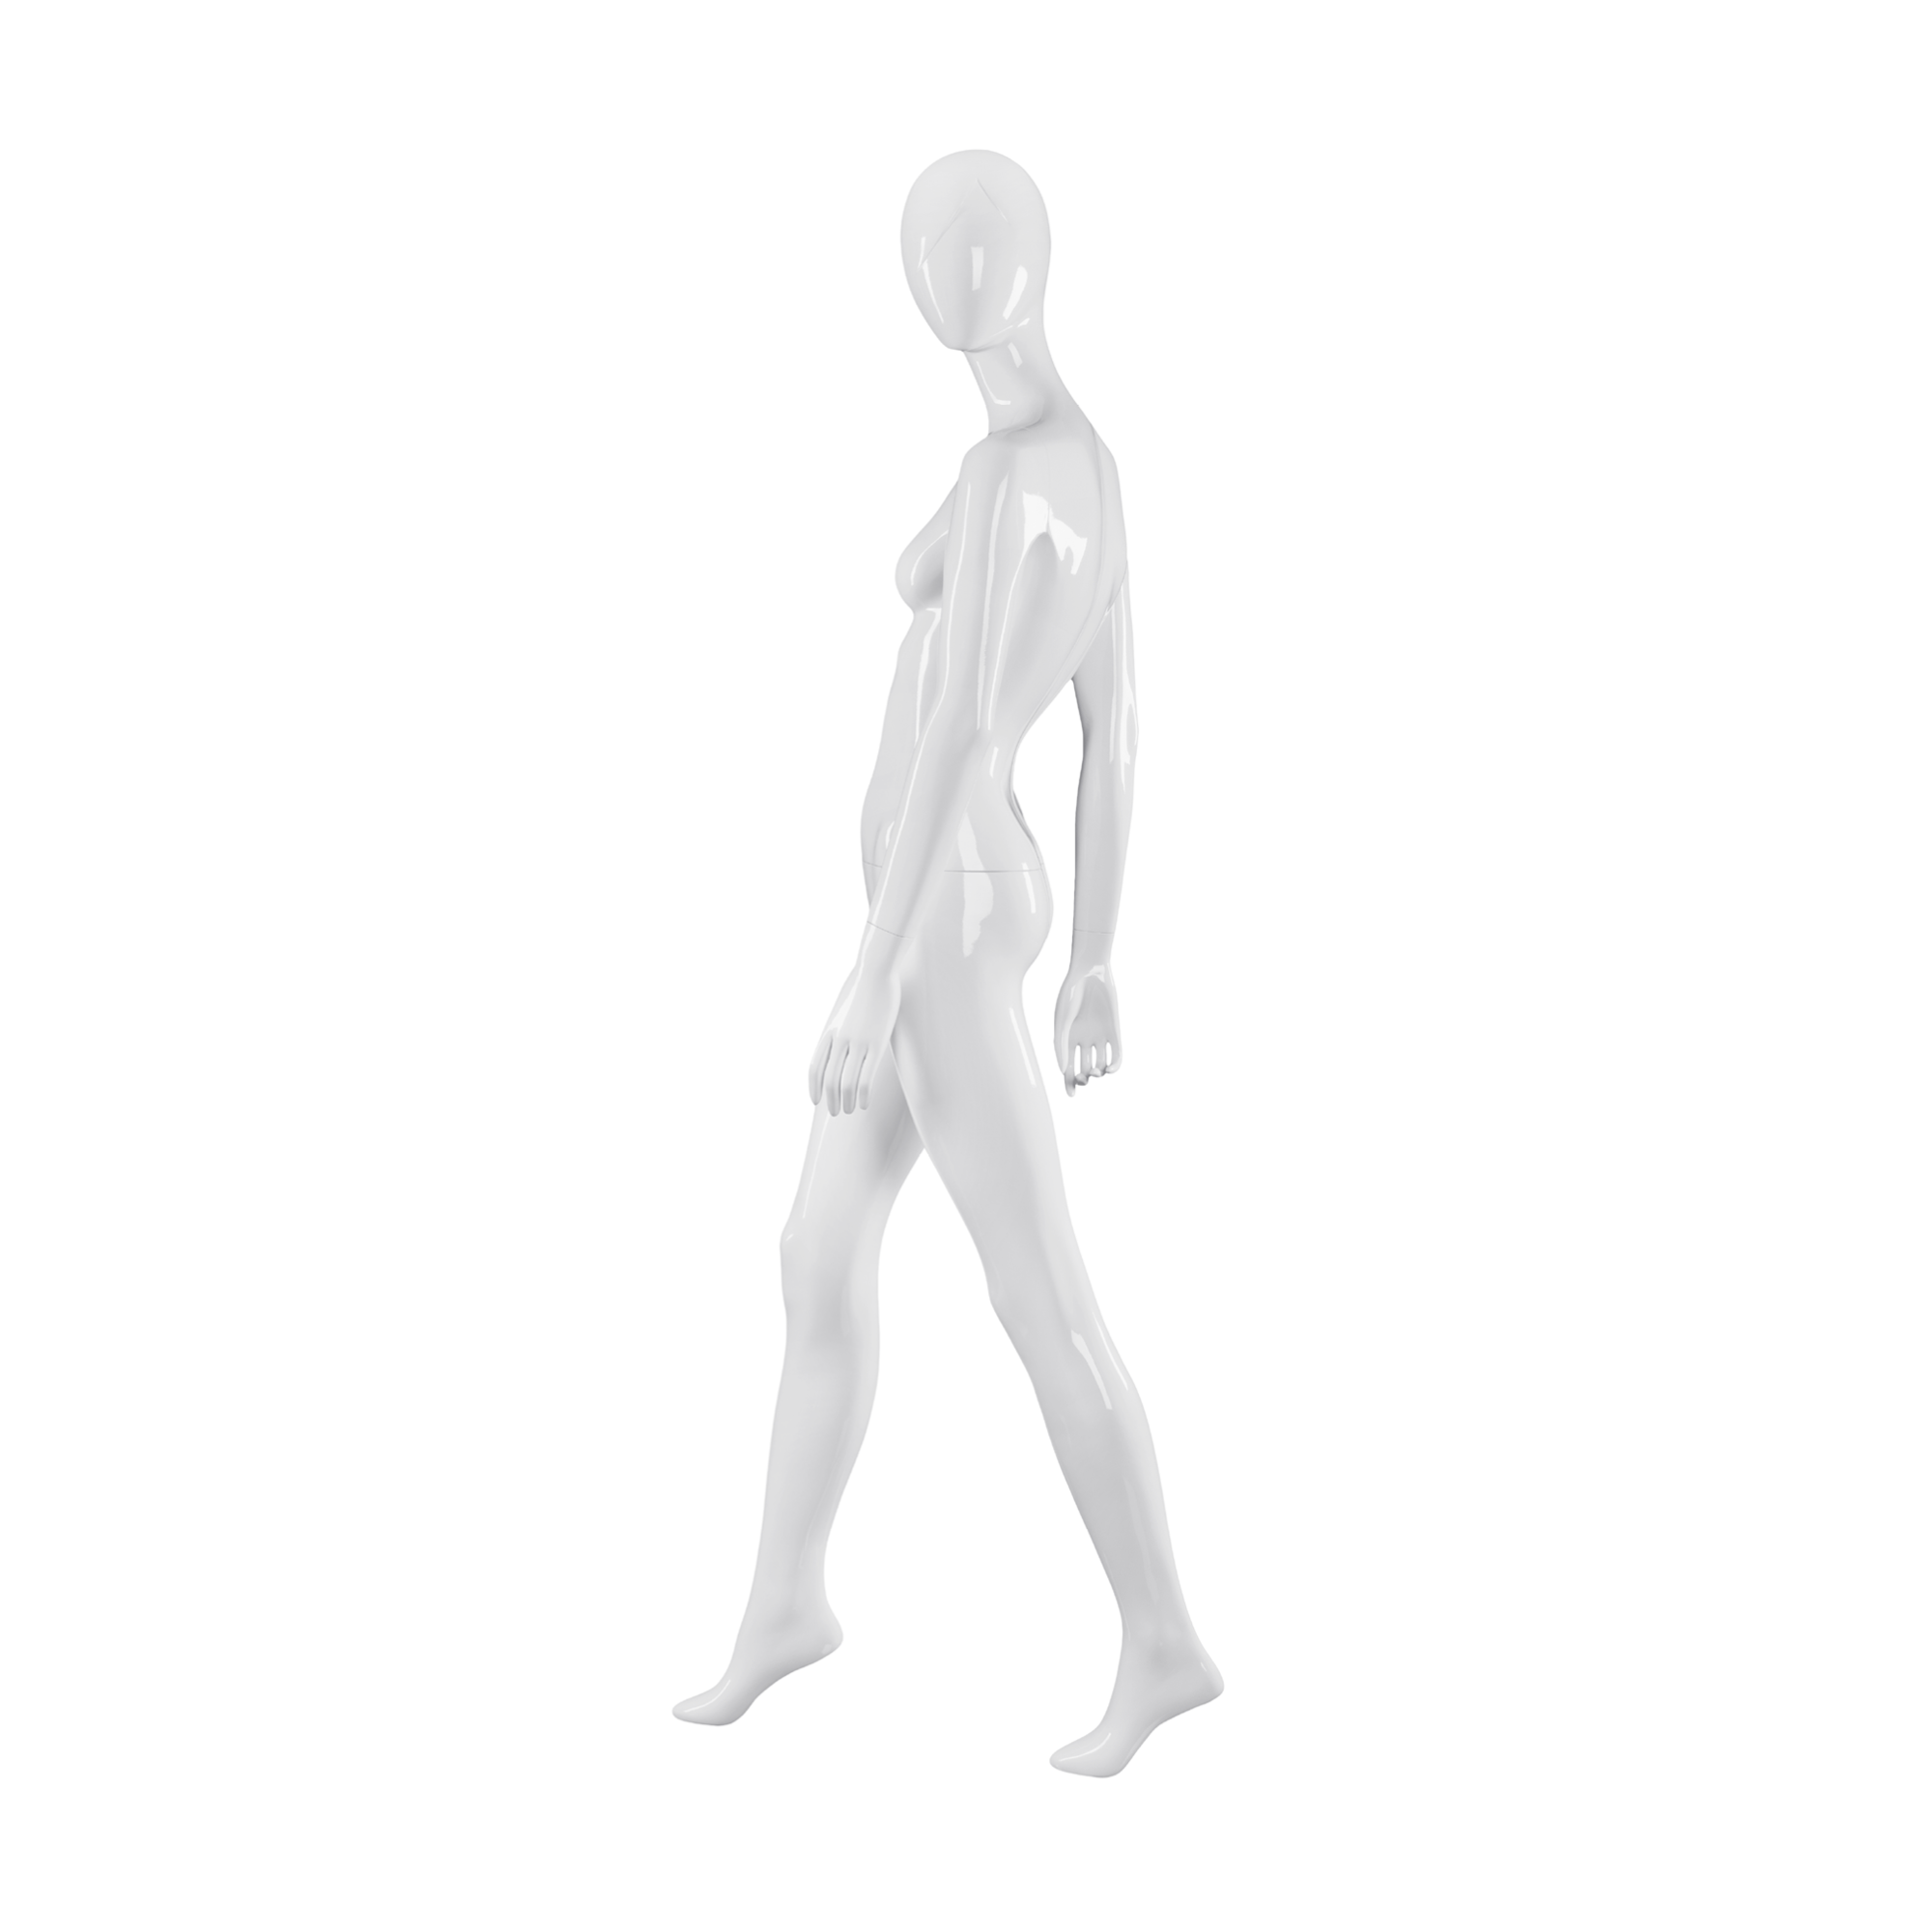 PNG Mannequin - 61440